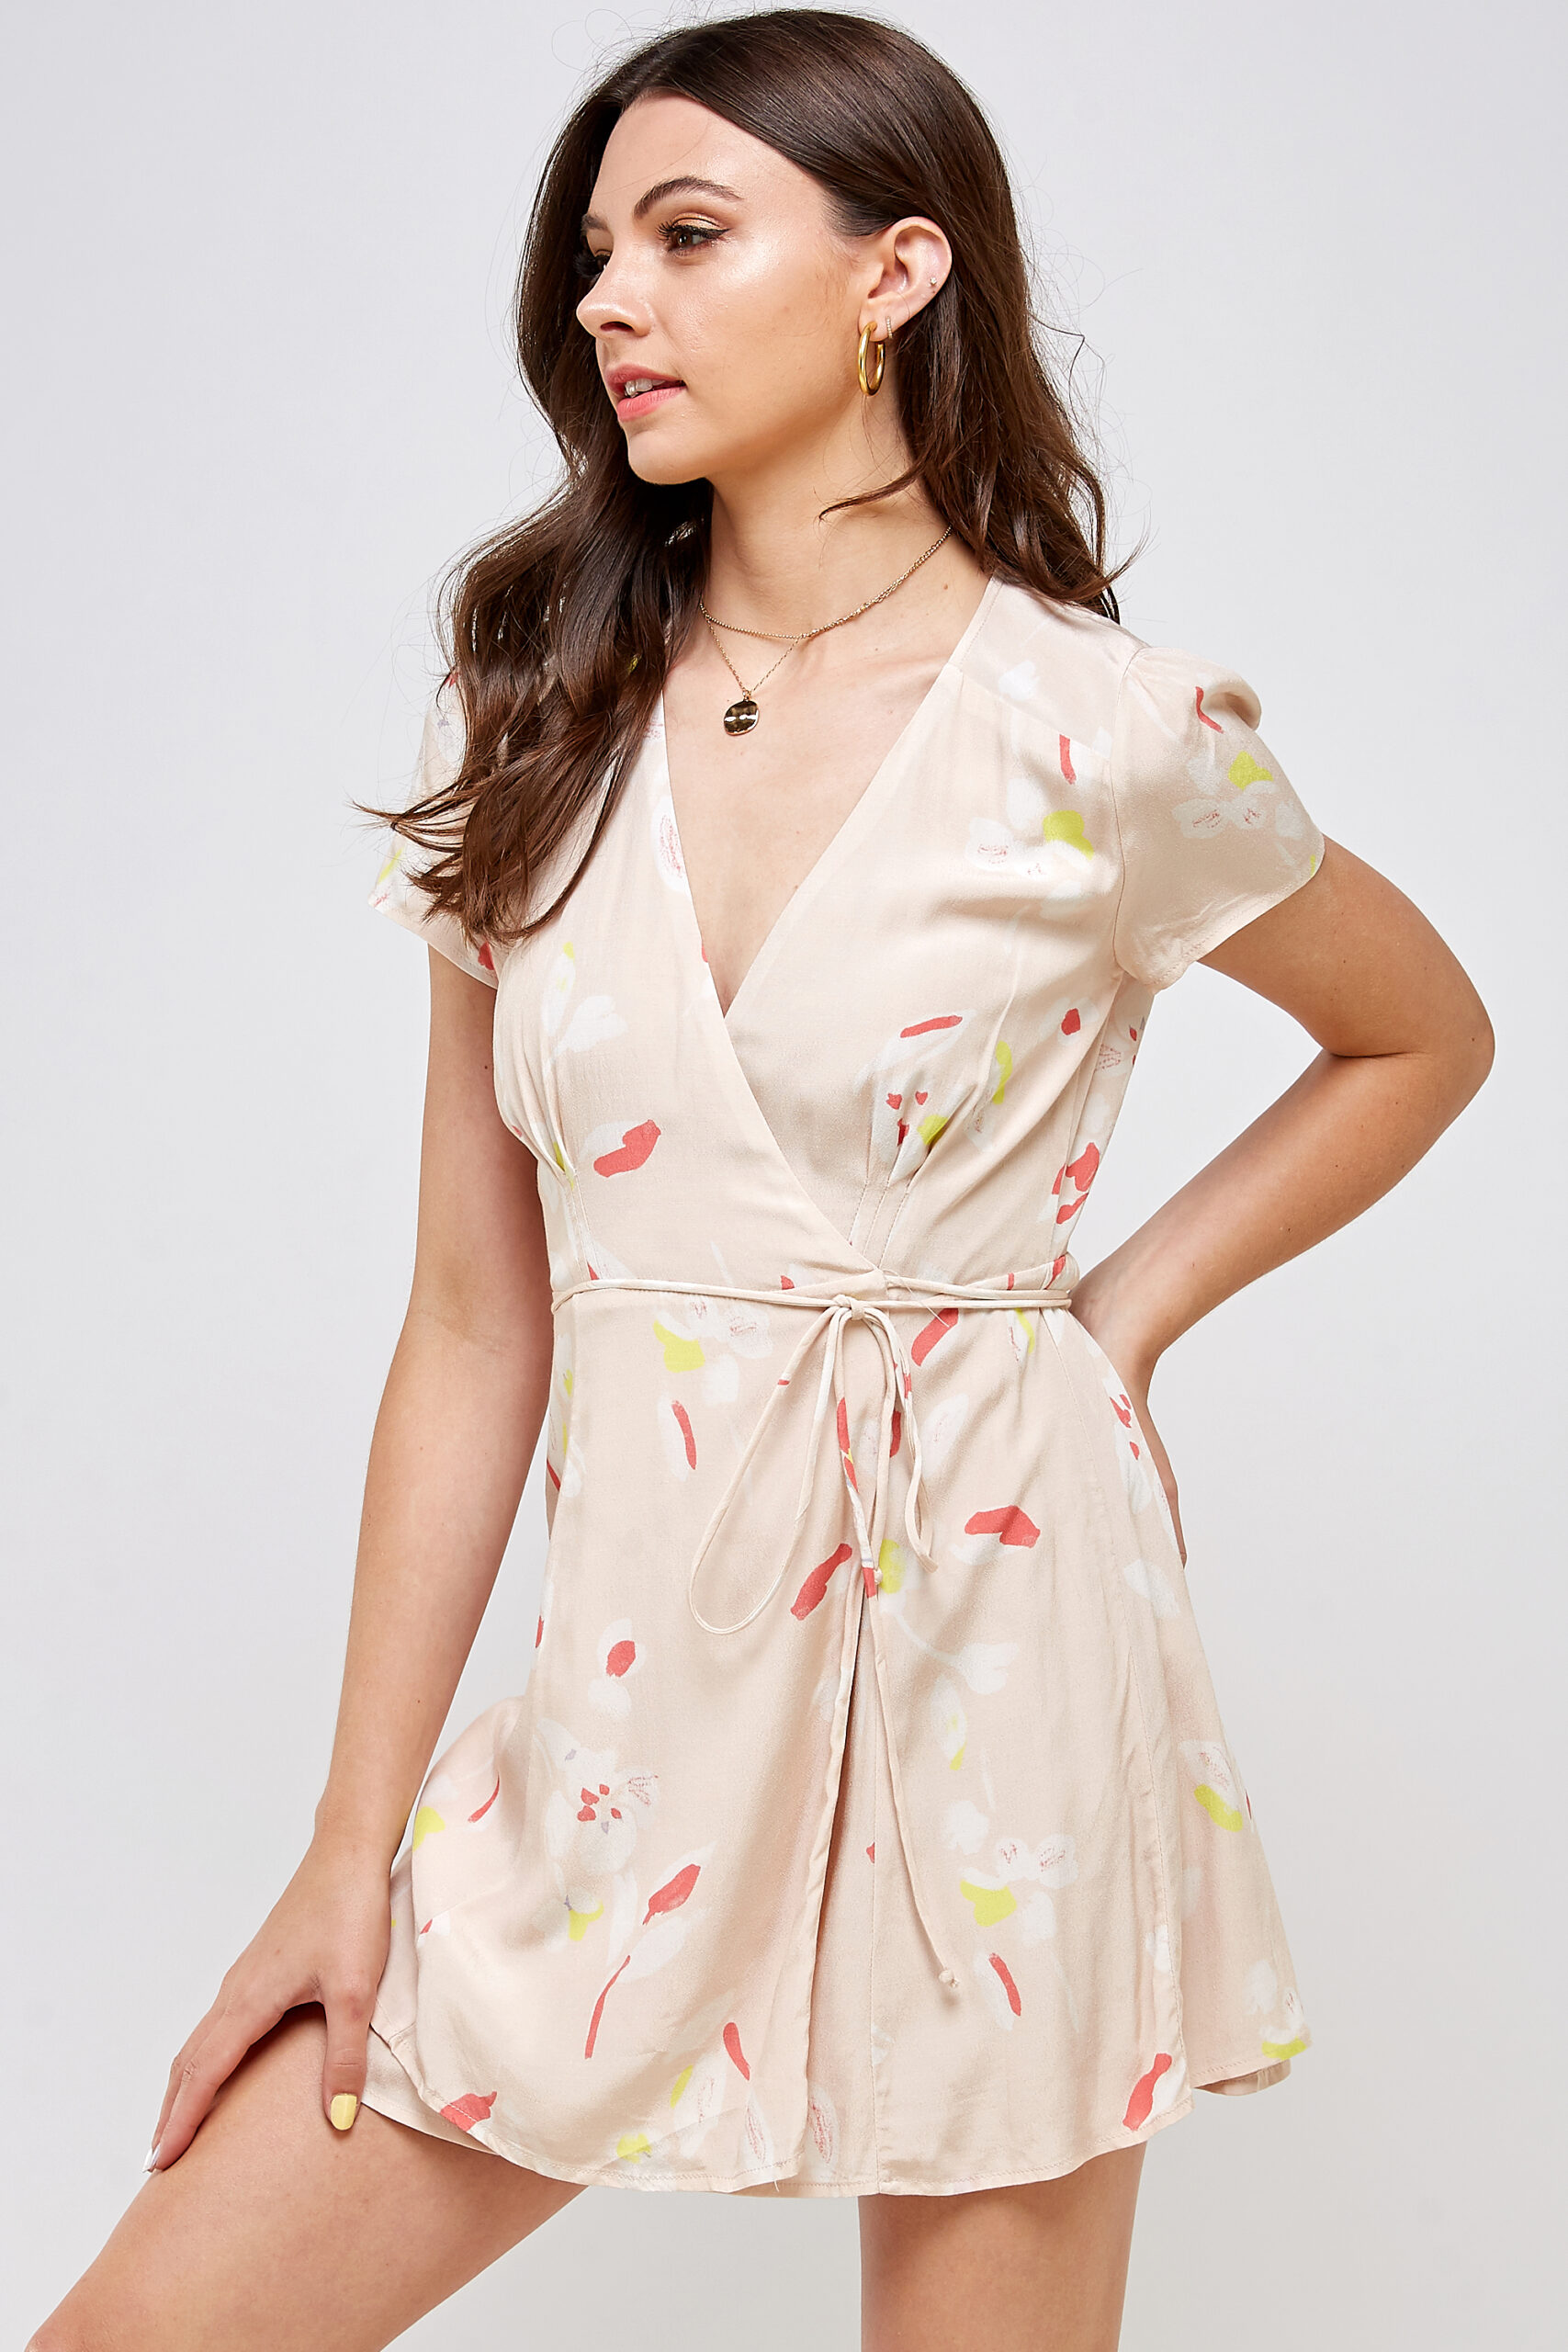 100% Rayon V-neck Belted Waist 3/4 Front View Medium